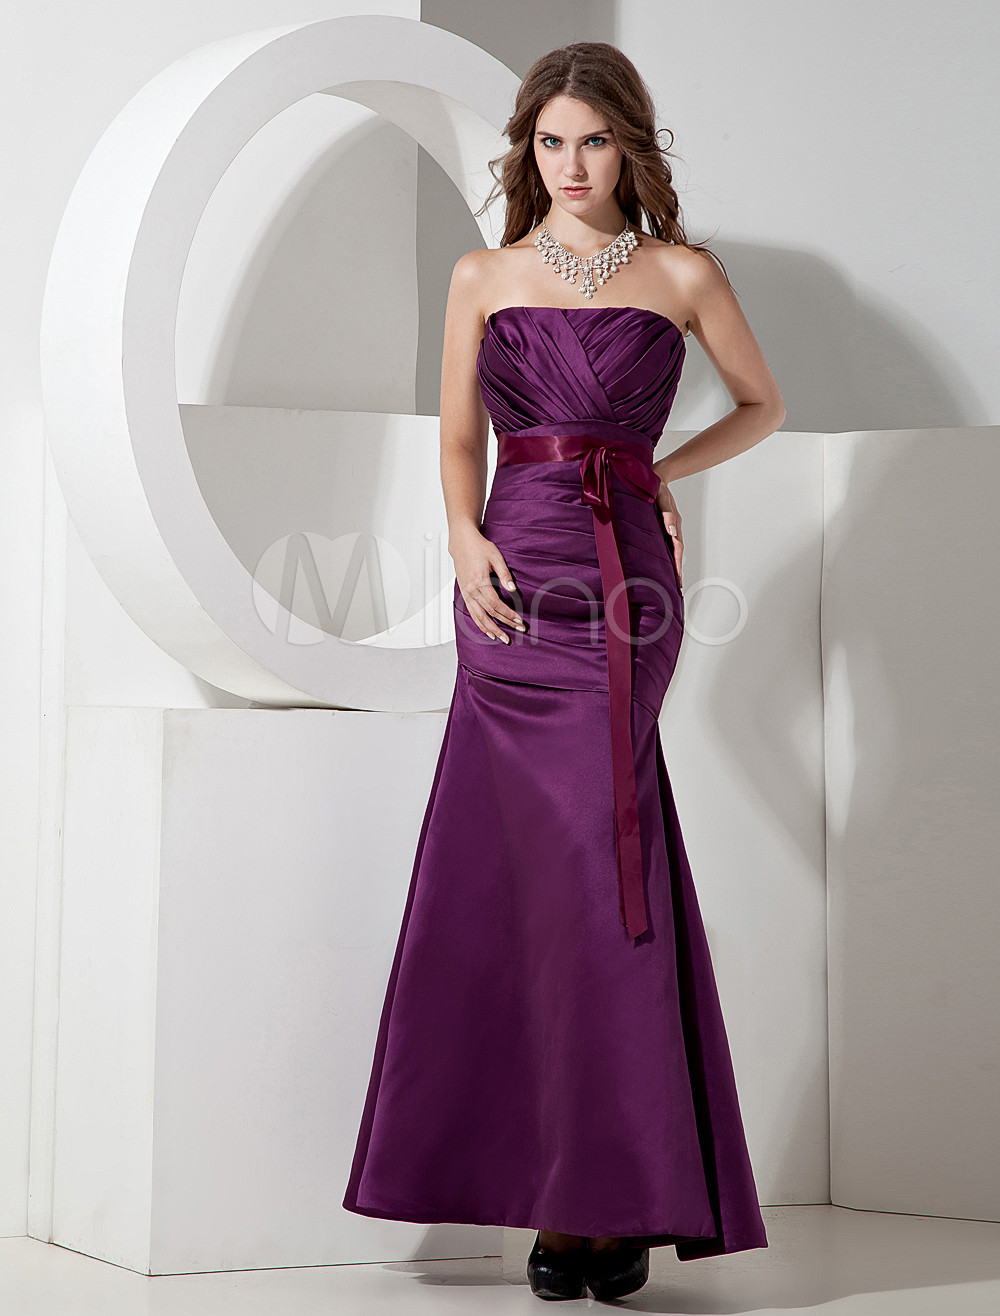 A-line Grape Satin Strapless Floor Length Bridesmaid Dress